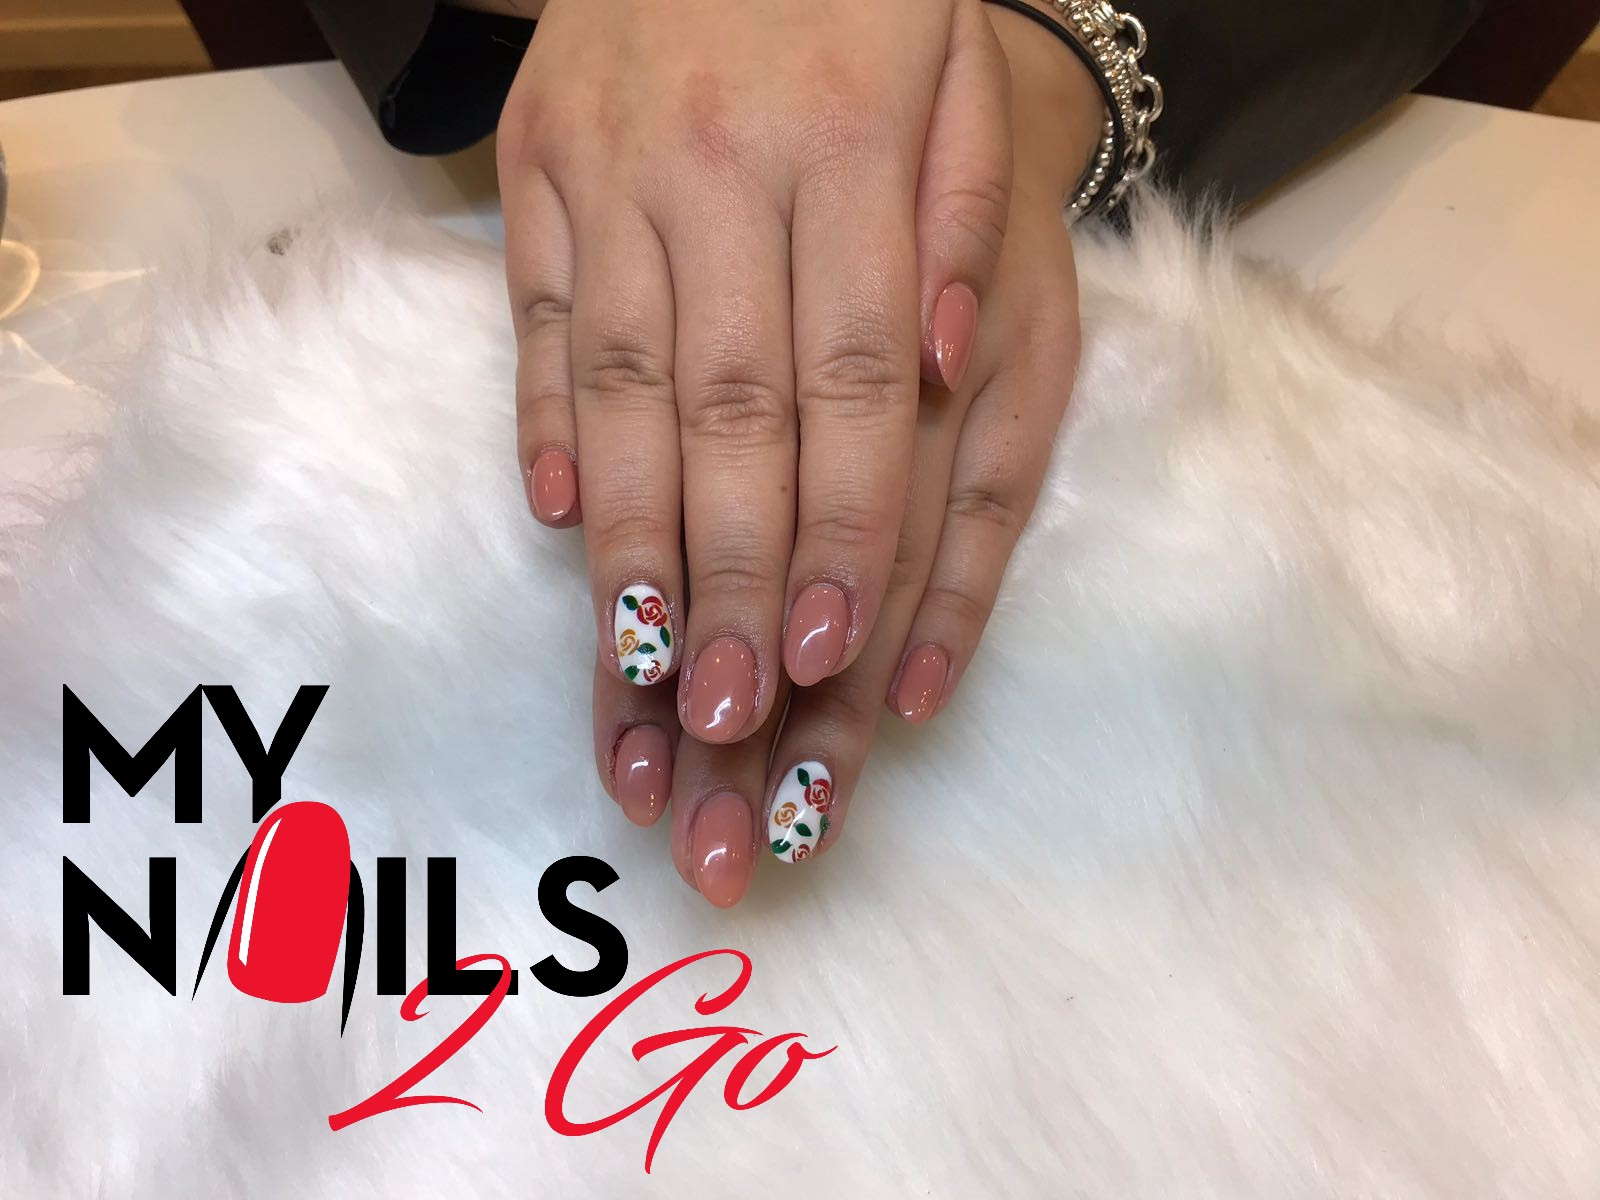 Keep your fingernails dry and clean by proper manicure & pedicure